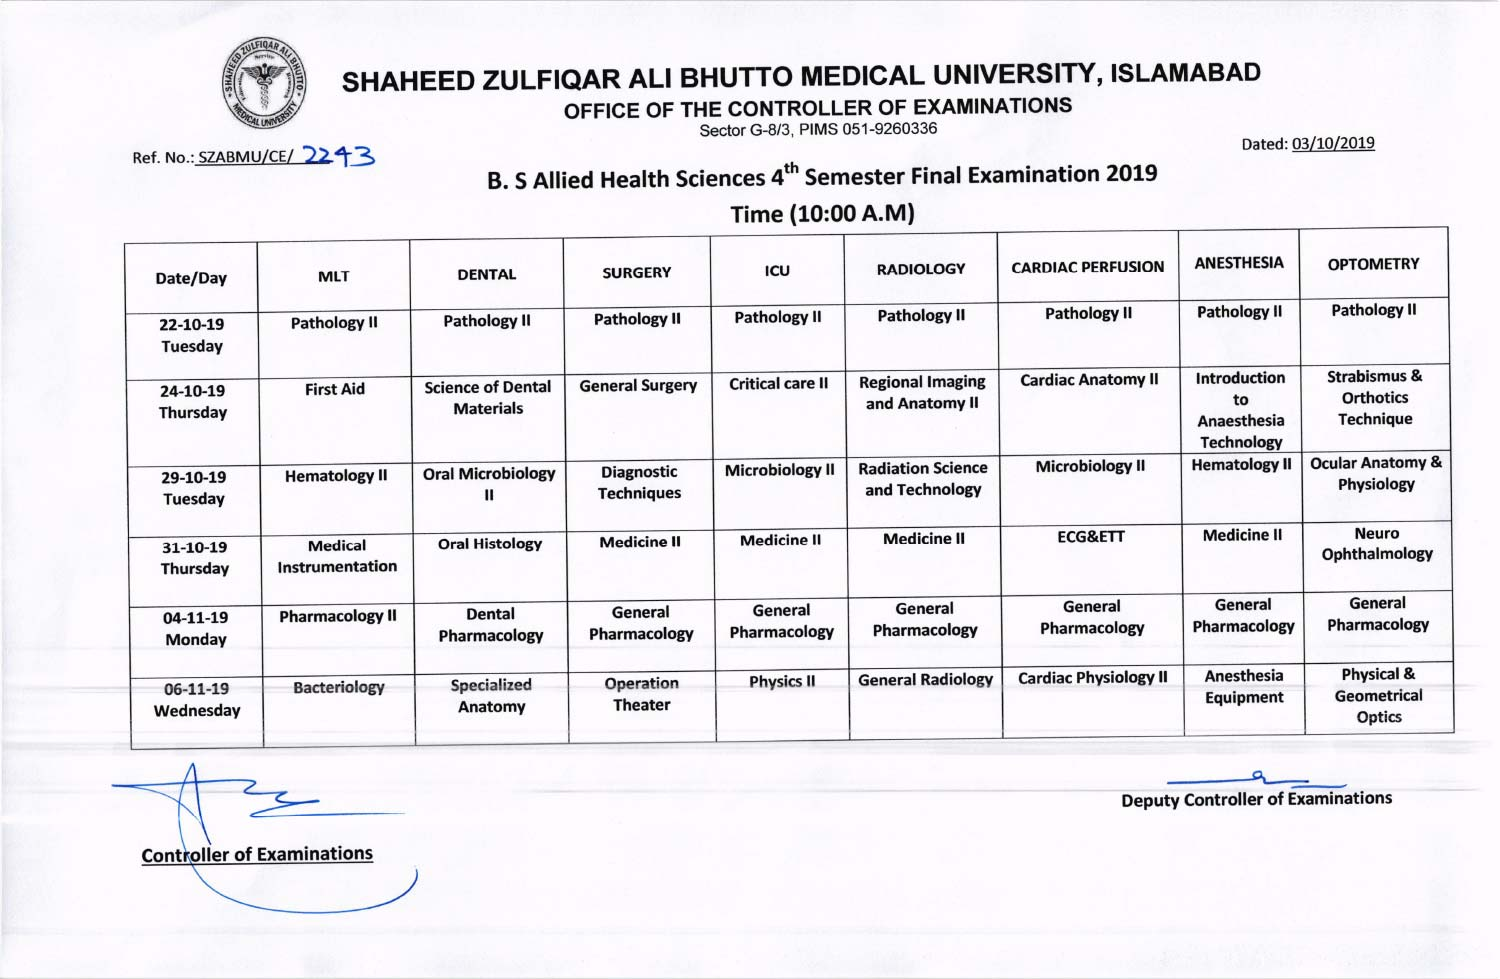 Date sheet of B.S Allied Health Sciences (AHS) 4th Semester Annual Examinations 2019